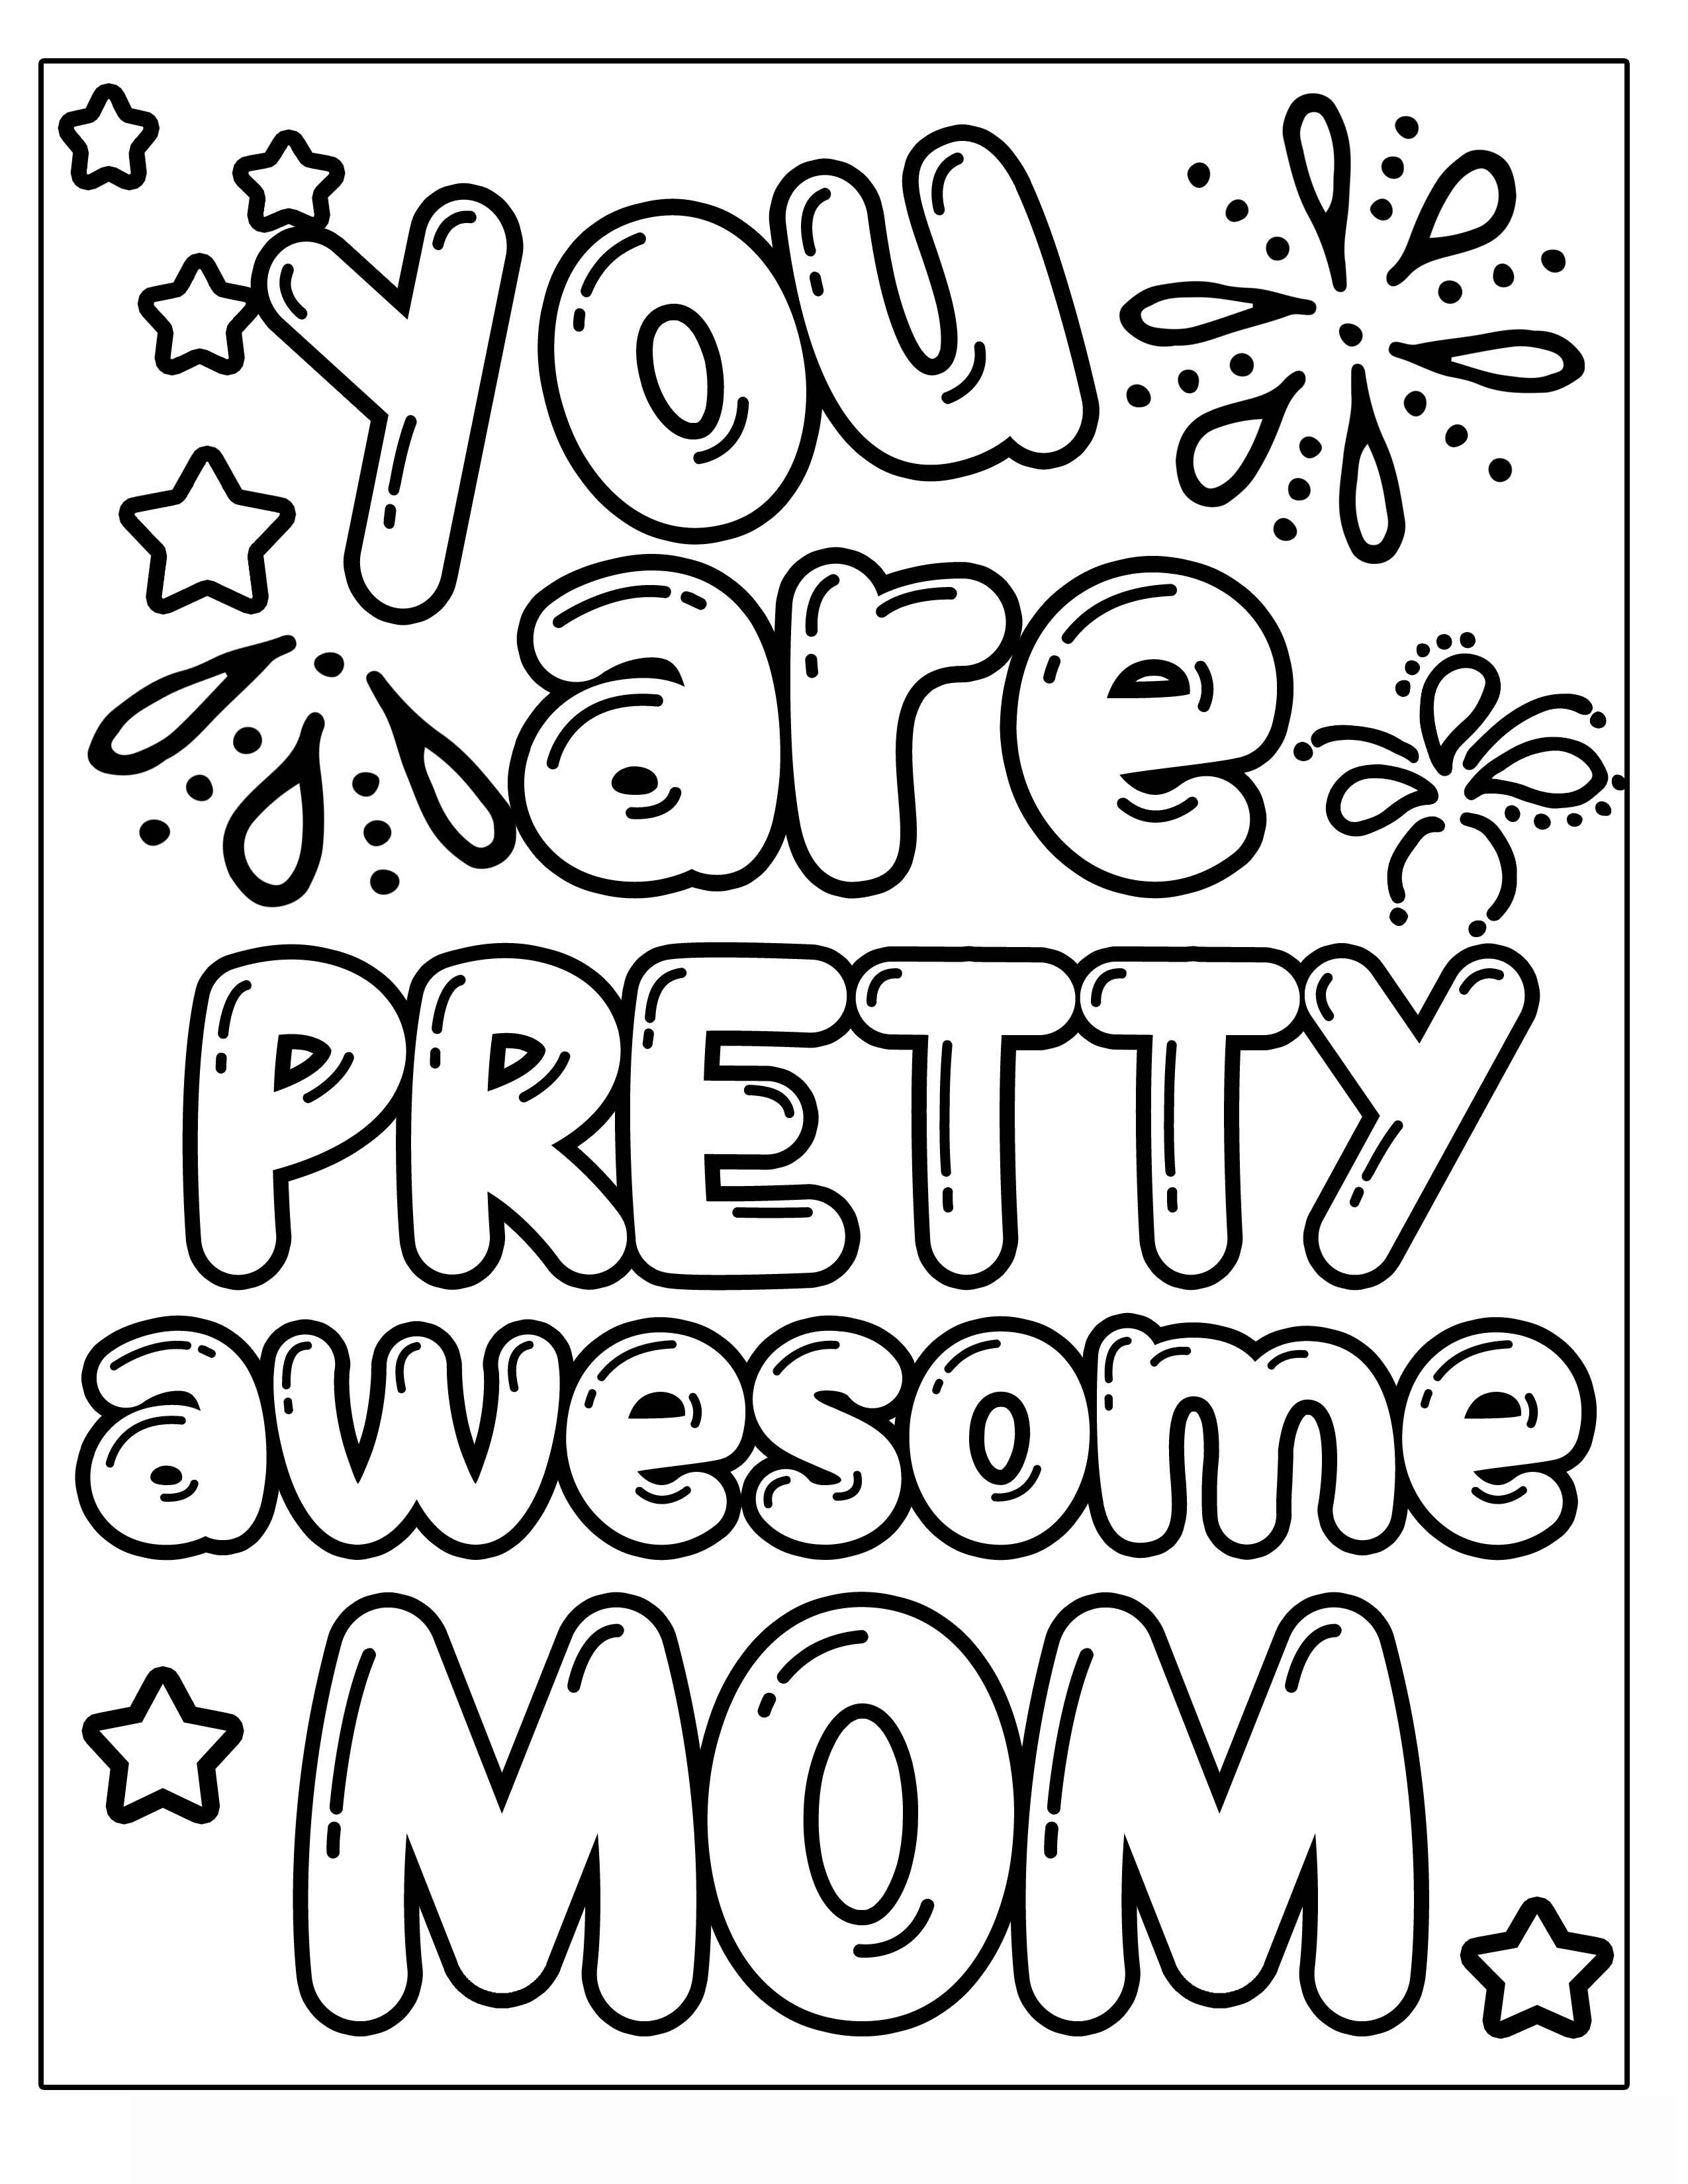 you are pretty awesome MOM MOTHER'S DAY flower with vines and frills Clipart Coloring Pages for Kids Adults Art Activities Line Art